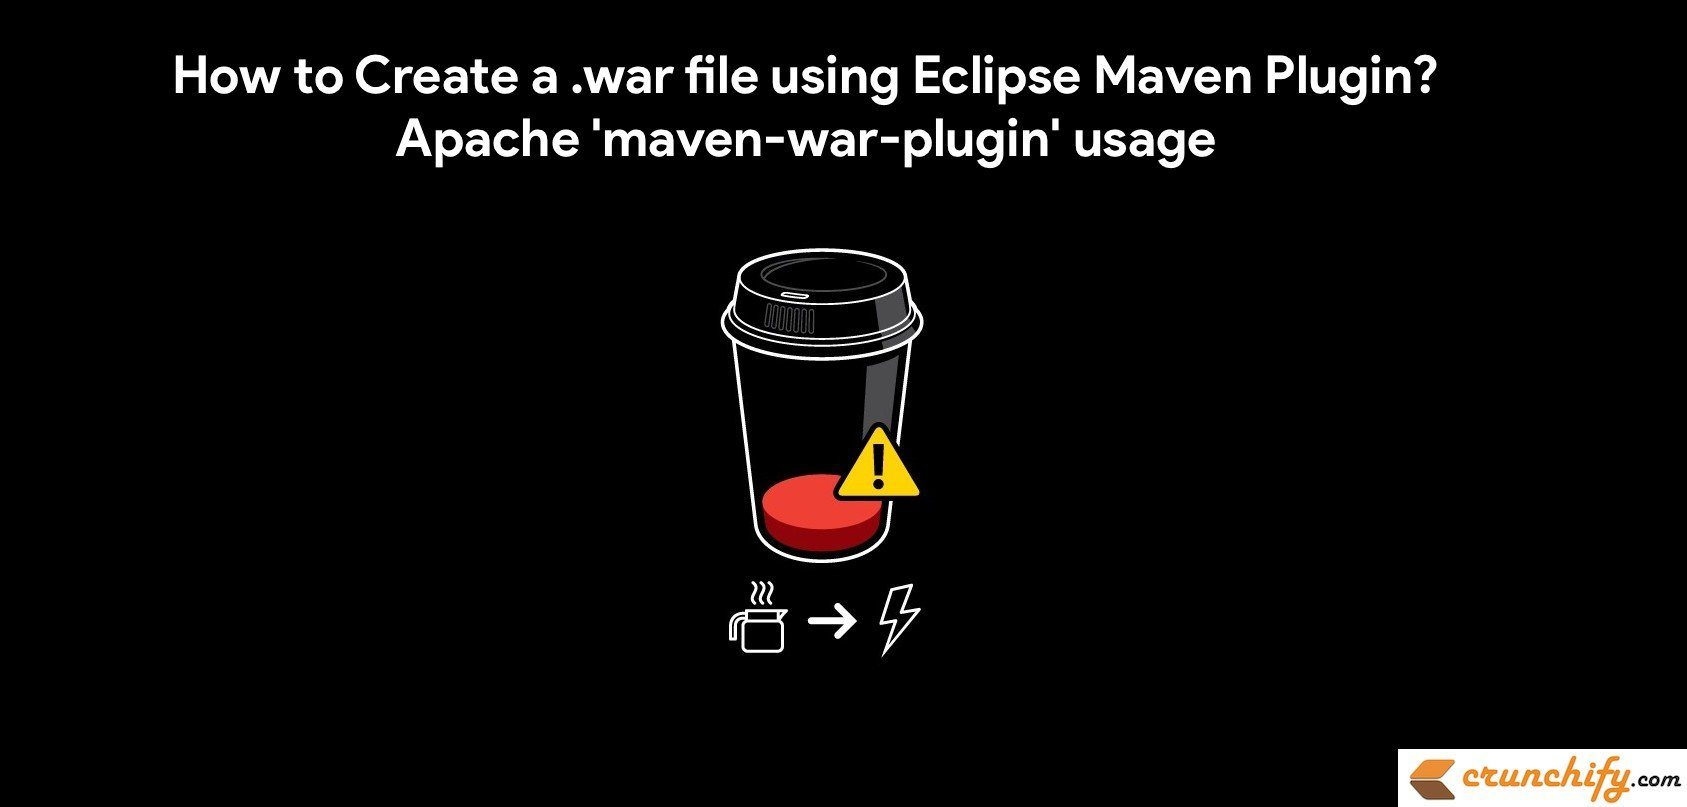 how-to-create-a-war-file-using-eclipse-maven-plugin-apache-maven-war-plugin